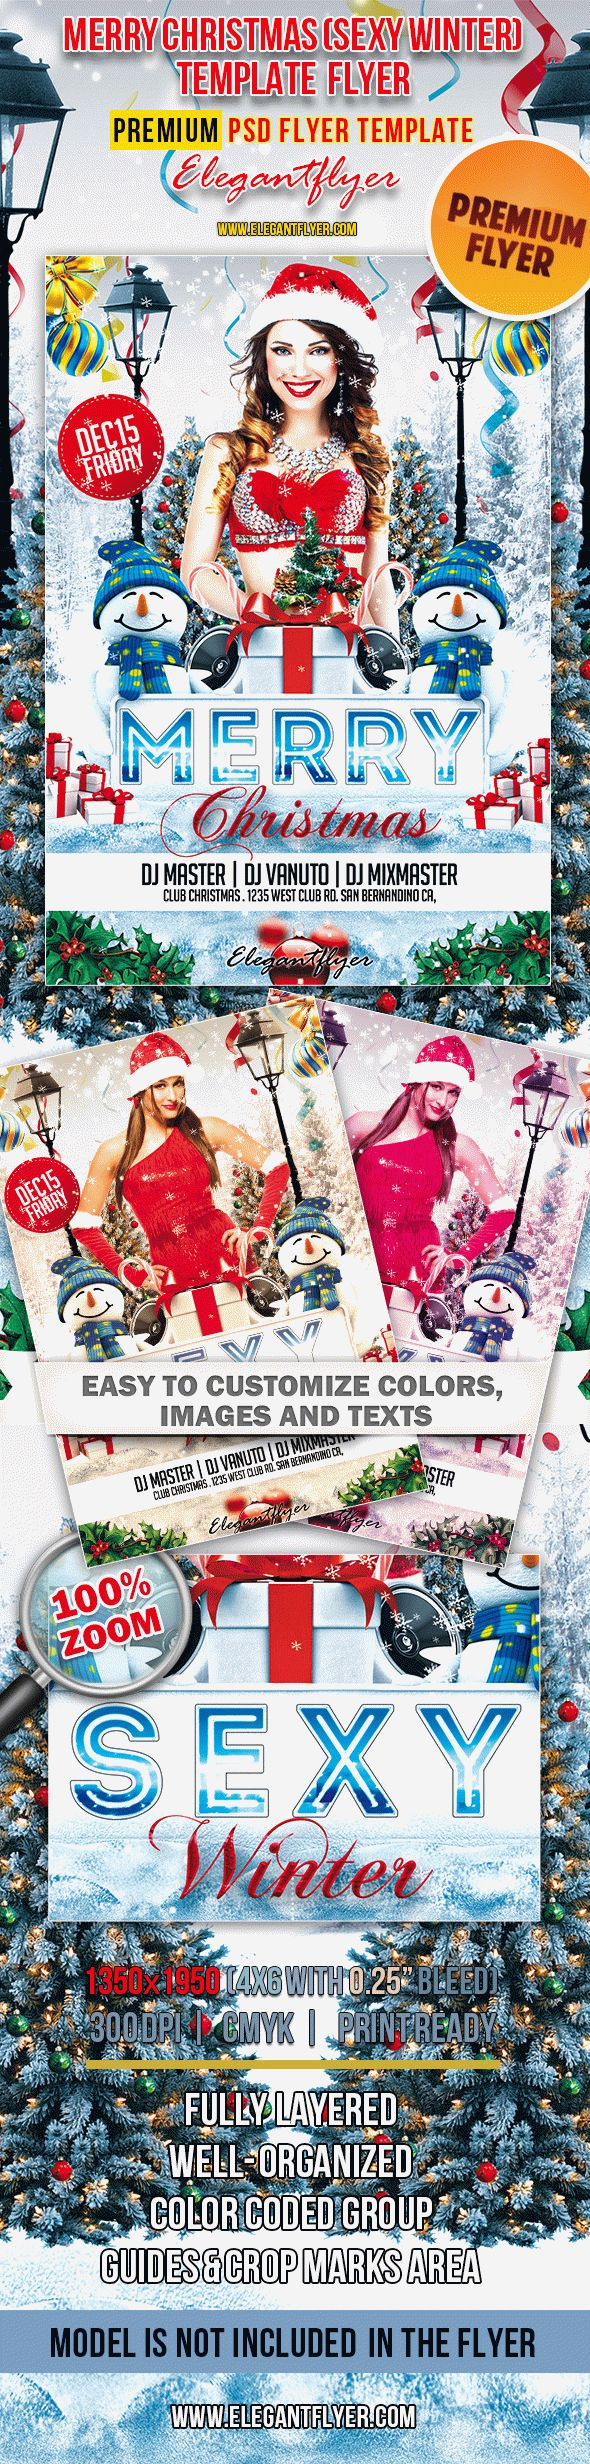 Merry Christmas (Sexy Winter) – Premium Club flyer PSD Template (bundle 2 in 1)